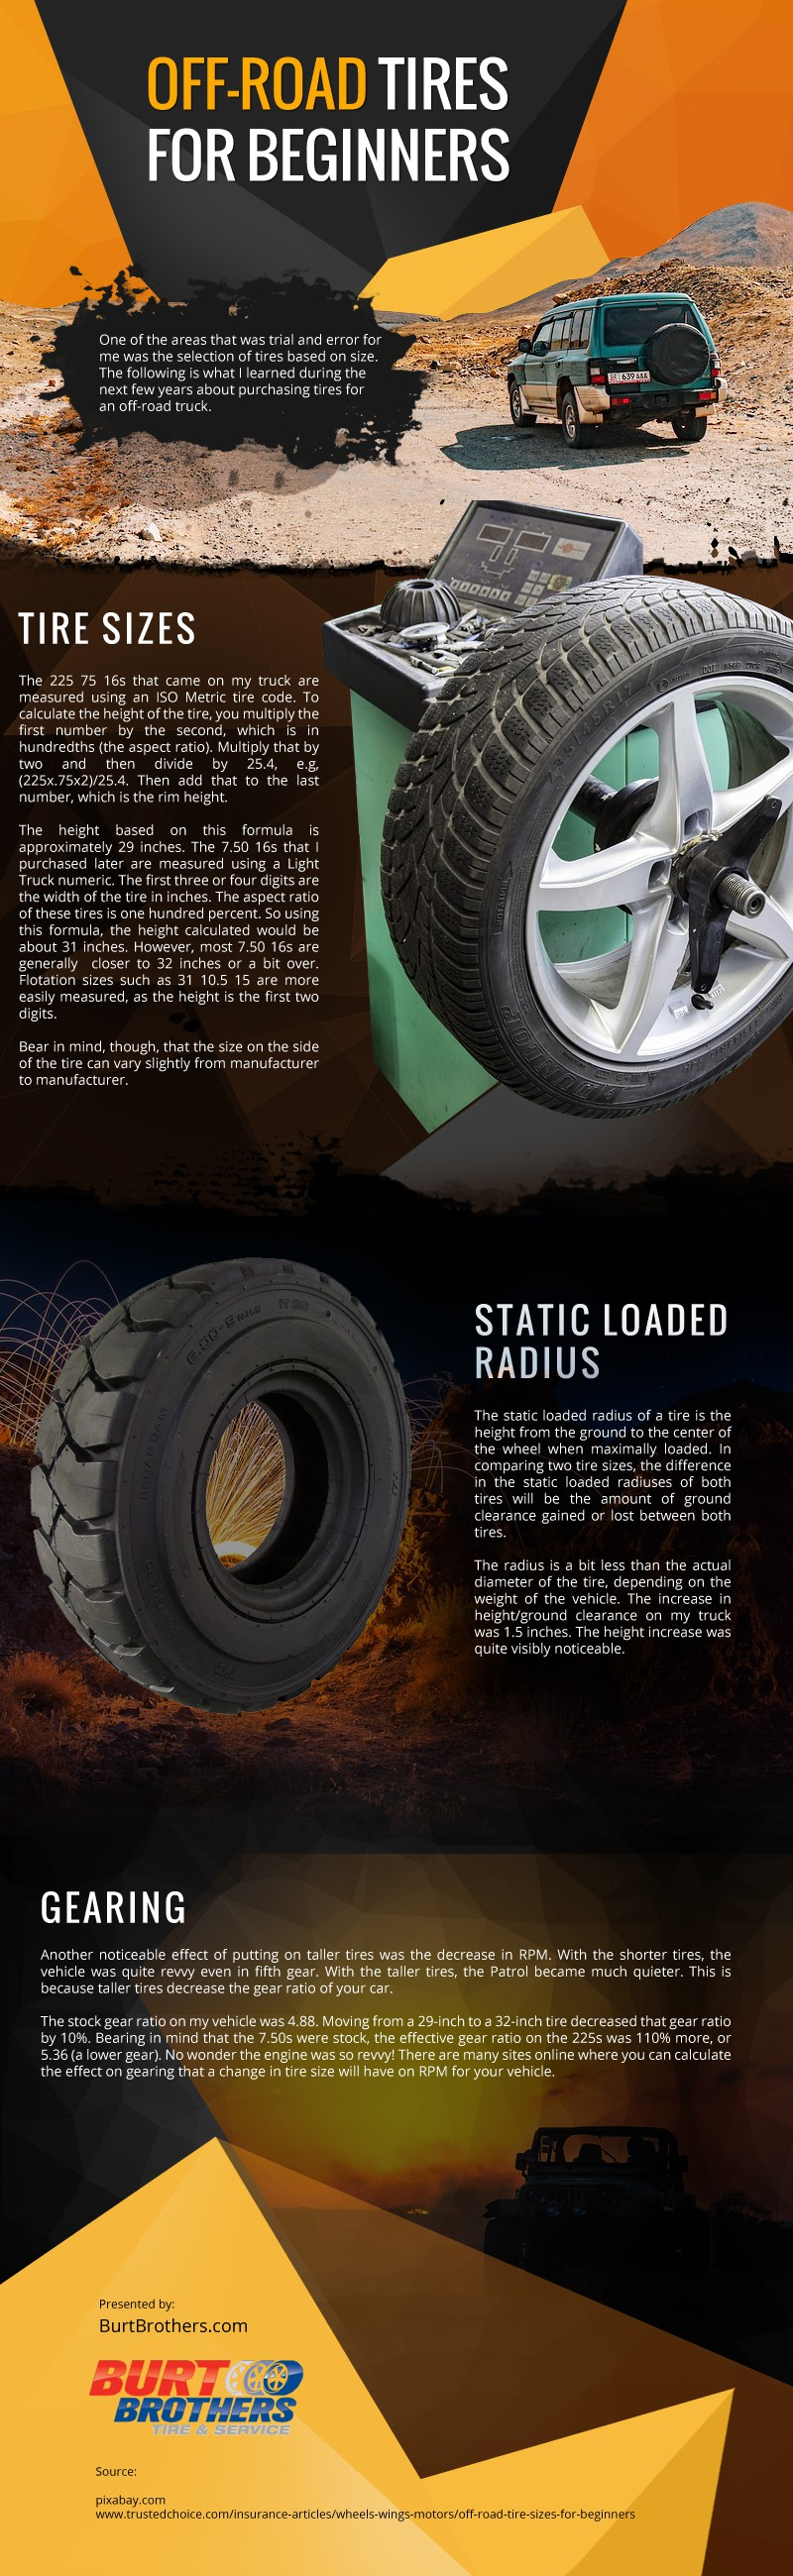 Off-Road Tires for Beginners